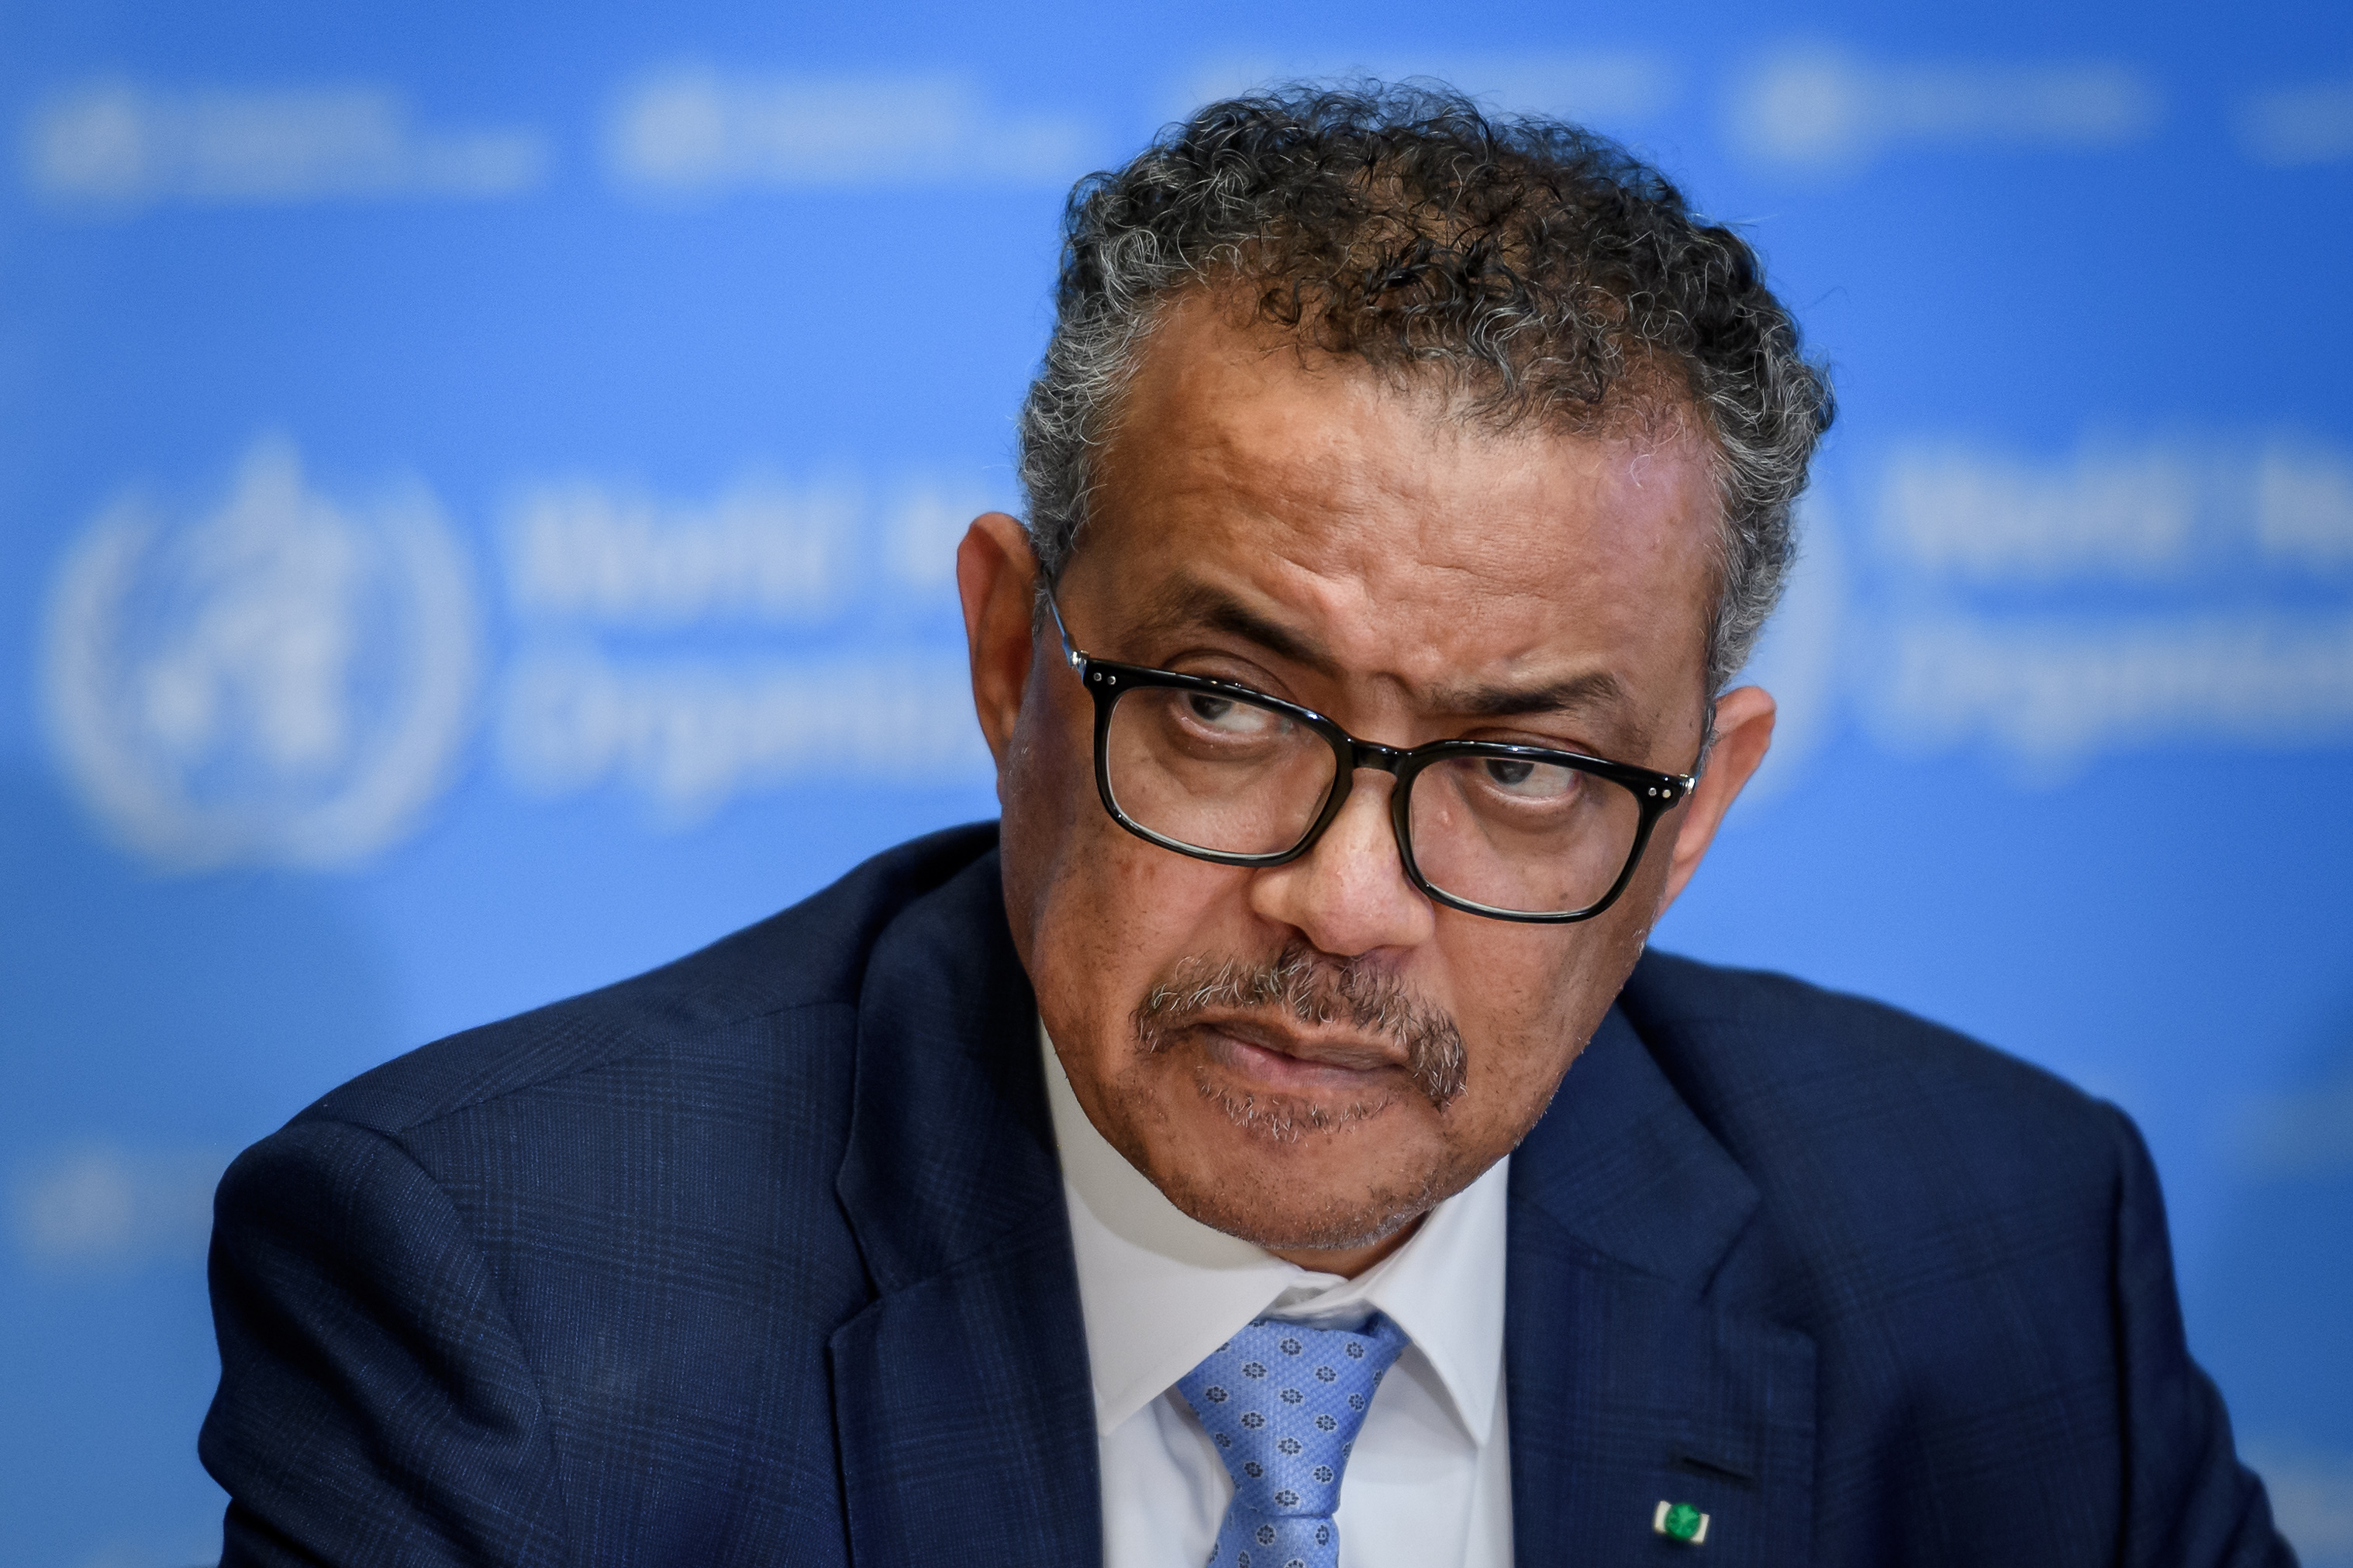 World Health Organization Director-General Tedros Adhanom Ghebreyesus attends a daily press briefing on the newcoronavirus dubbed COVID-19, at the WHO headquaters on March 2, 2020 in Geneva.